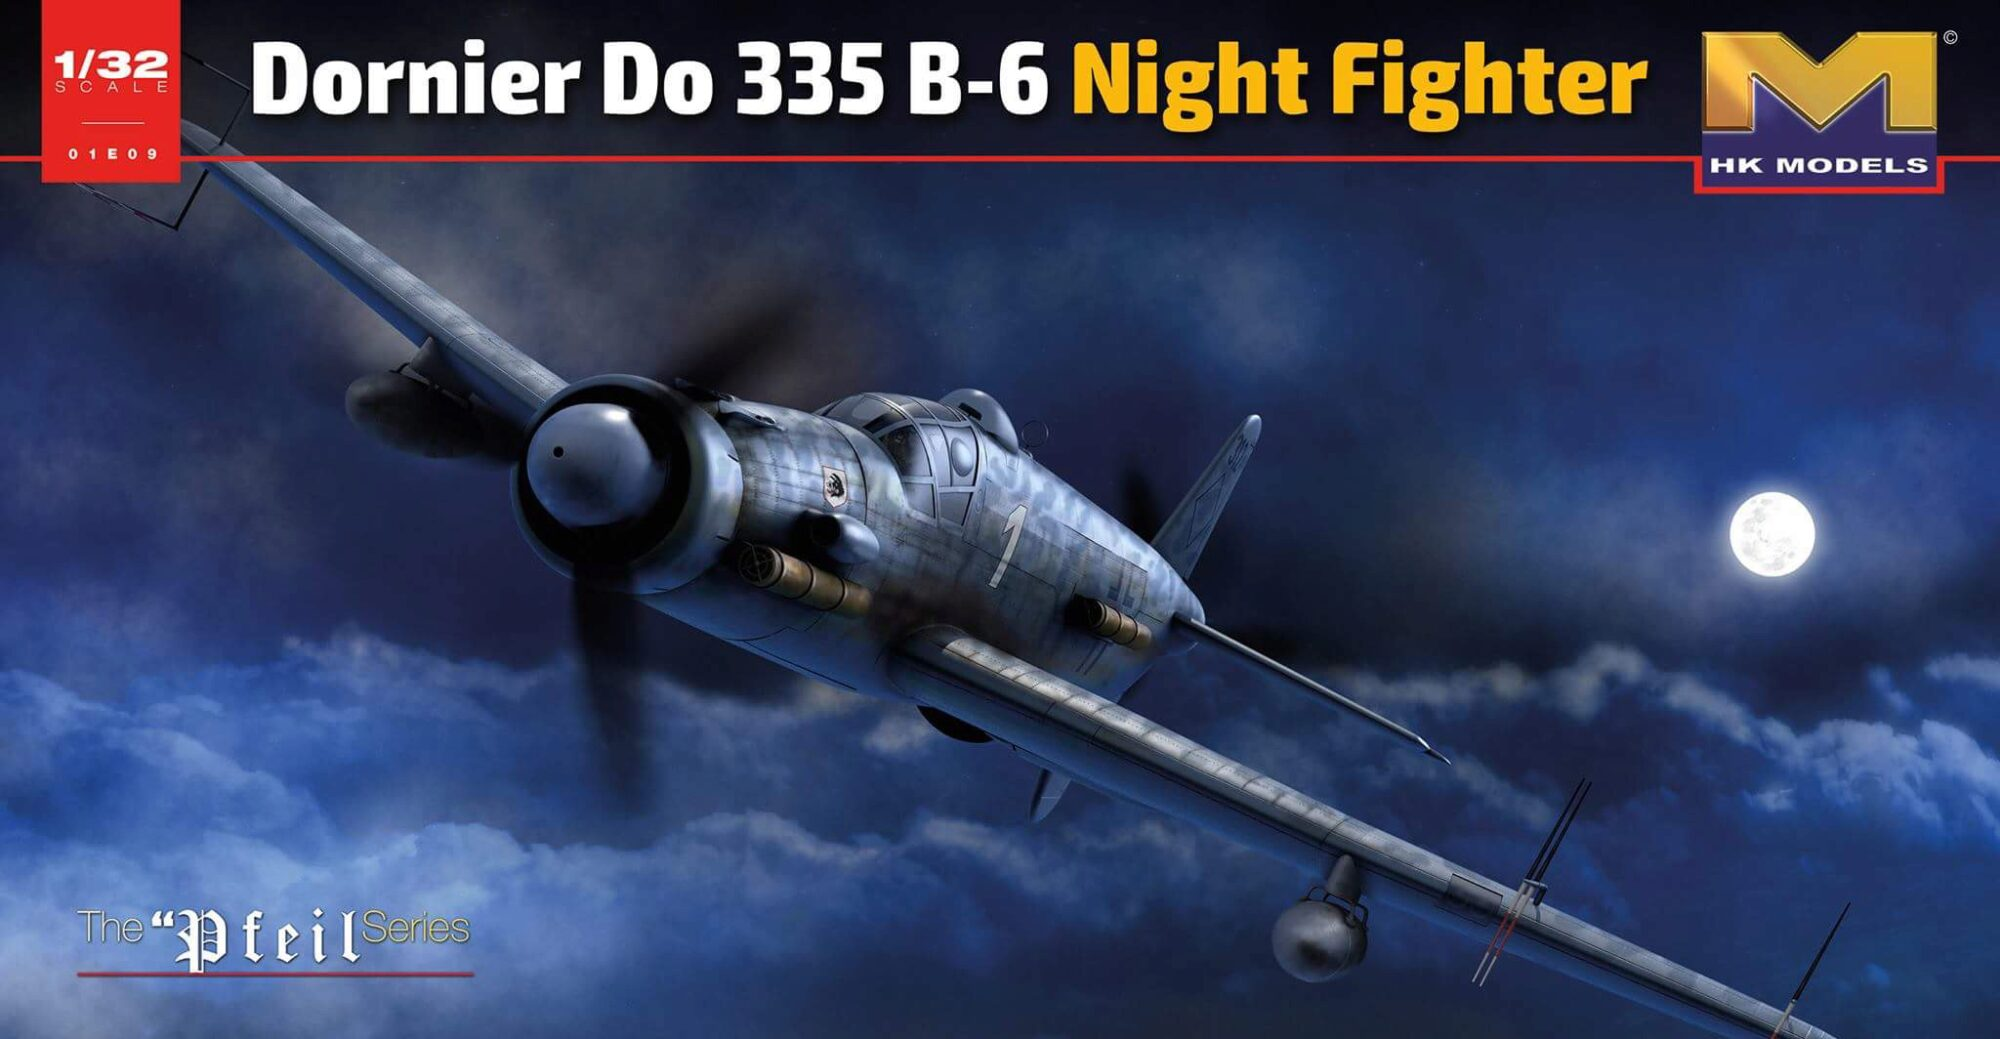 HK Models 01E21 Dornier Do 335 B-6 Night Fighter